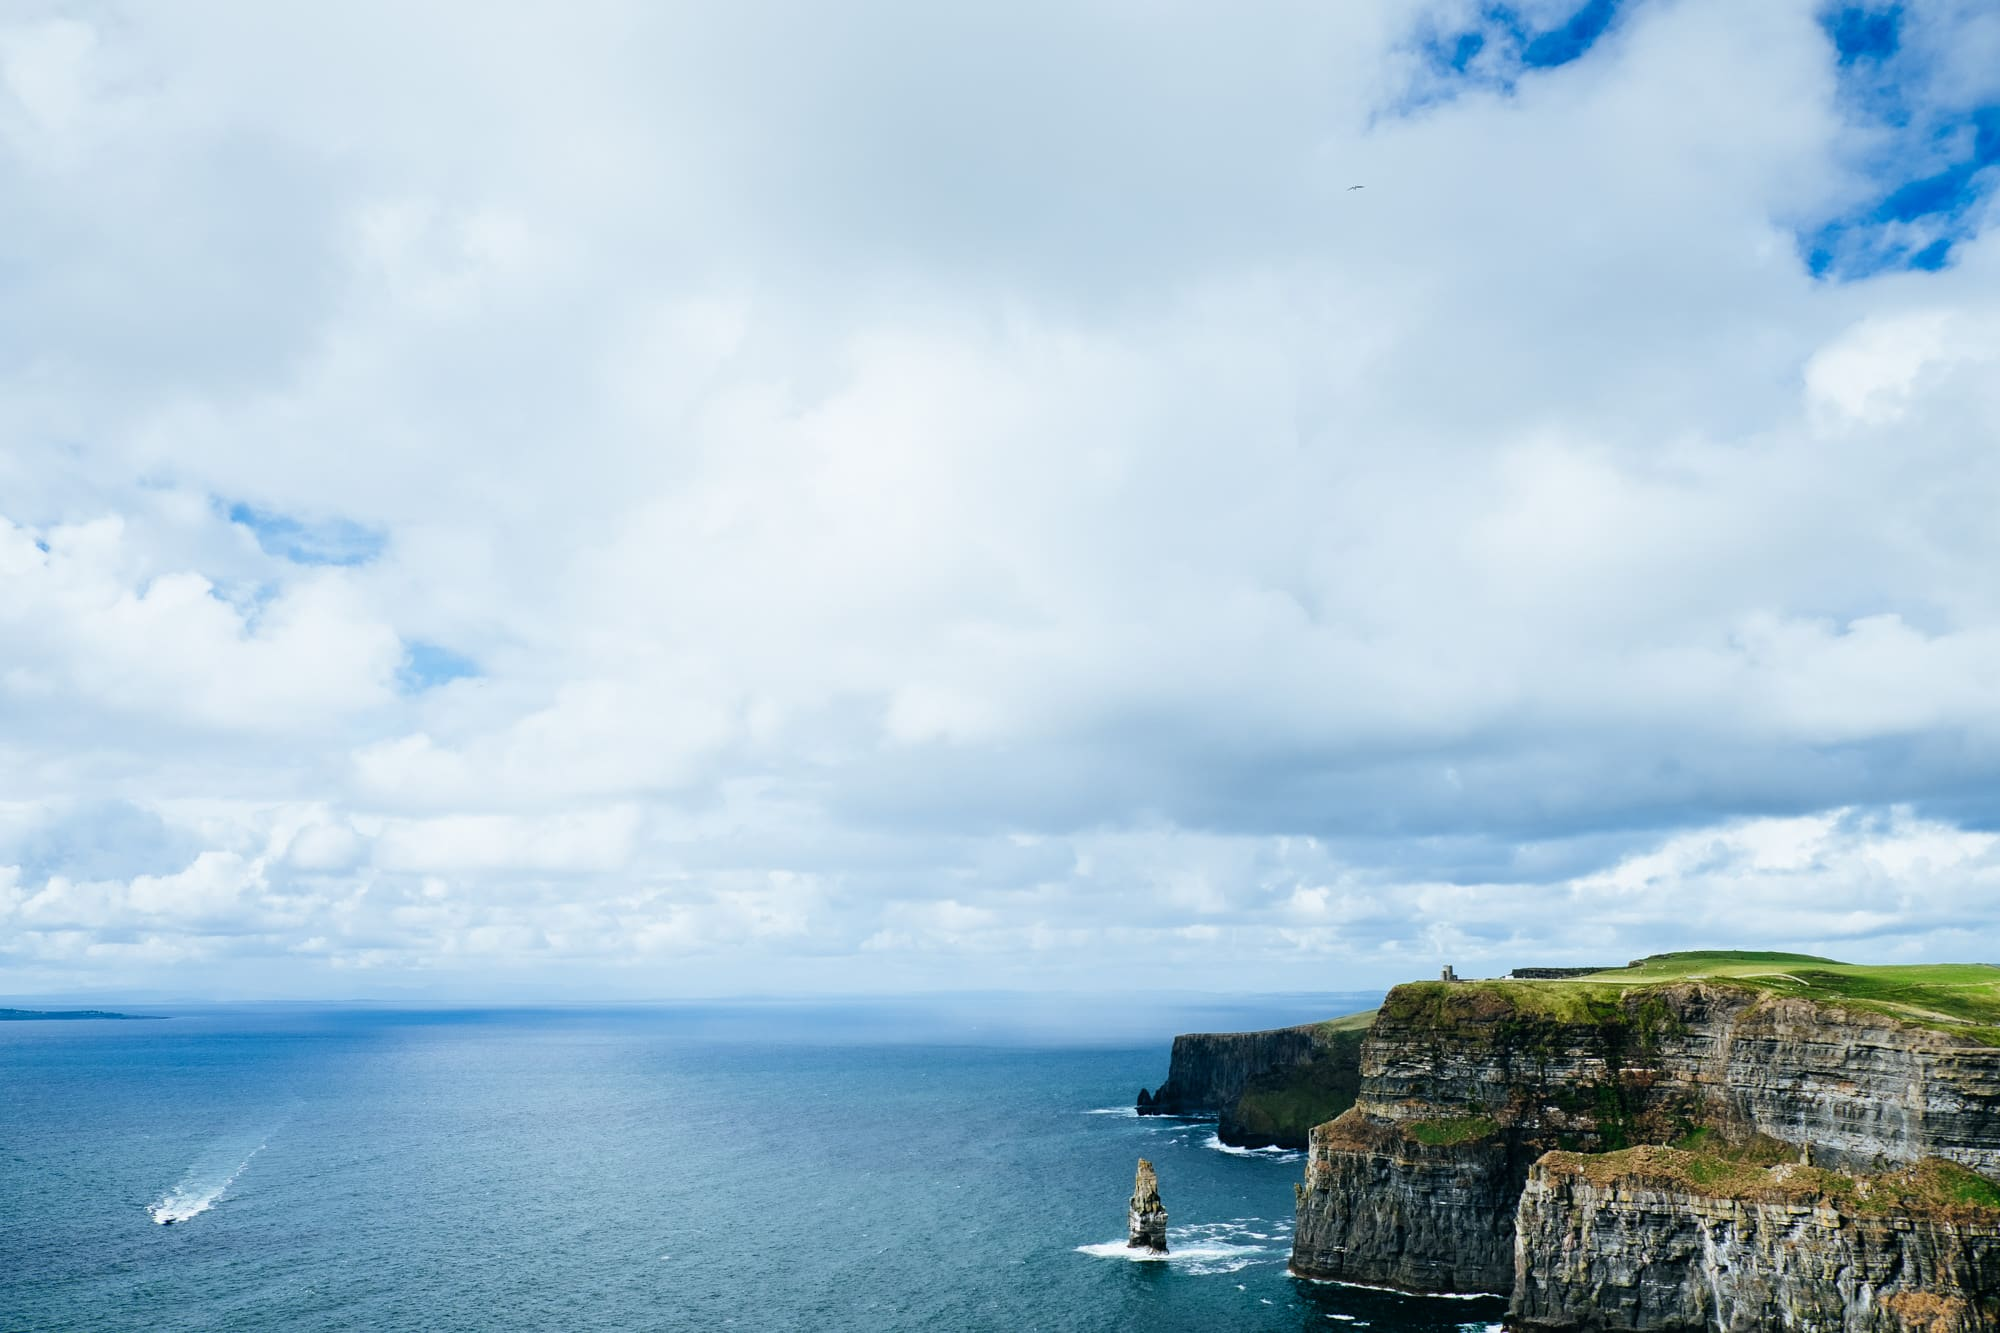 The Cliffs of Moher in Ireland on a sunny day. Photo (c) Rory O'Toole